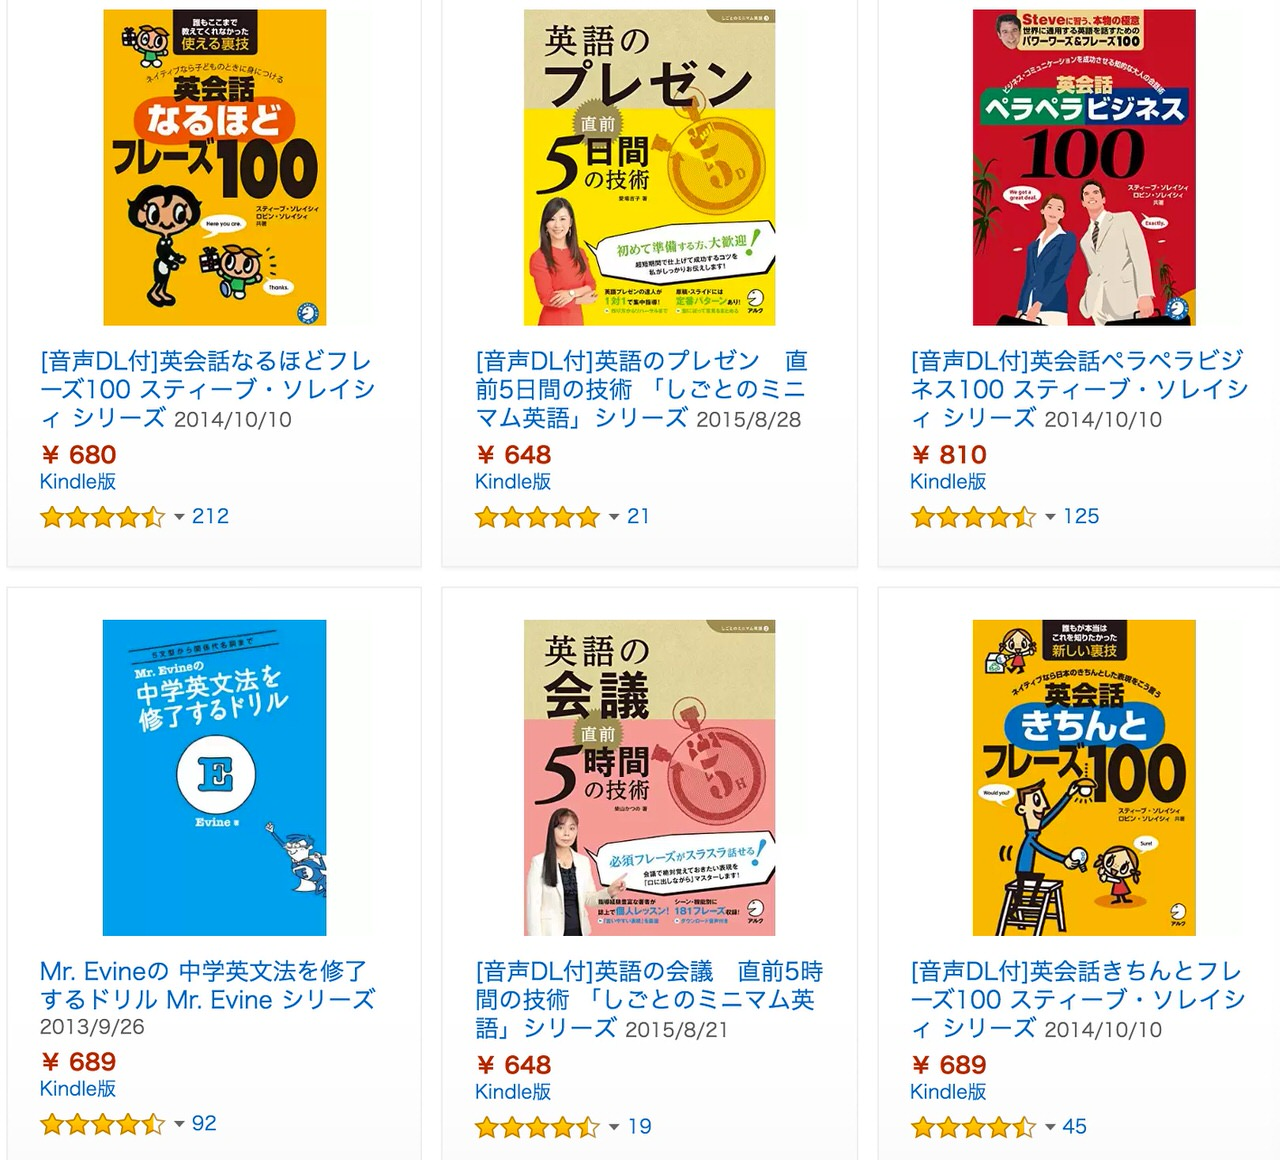 【Kindle】英会話・英語関連書籍が50%オフ「アルク全点セール」実施中(4月14日まで)